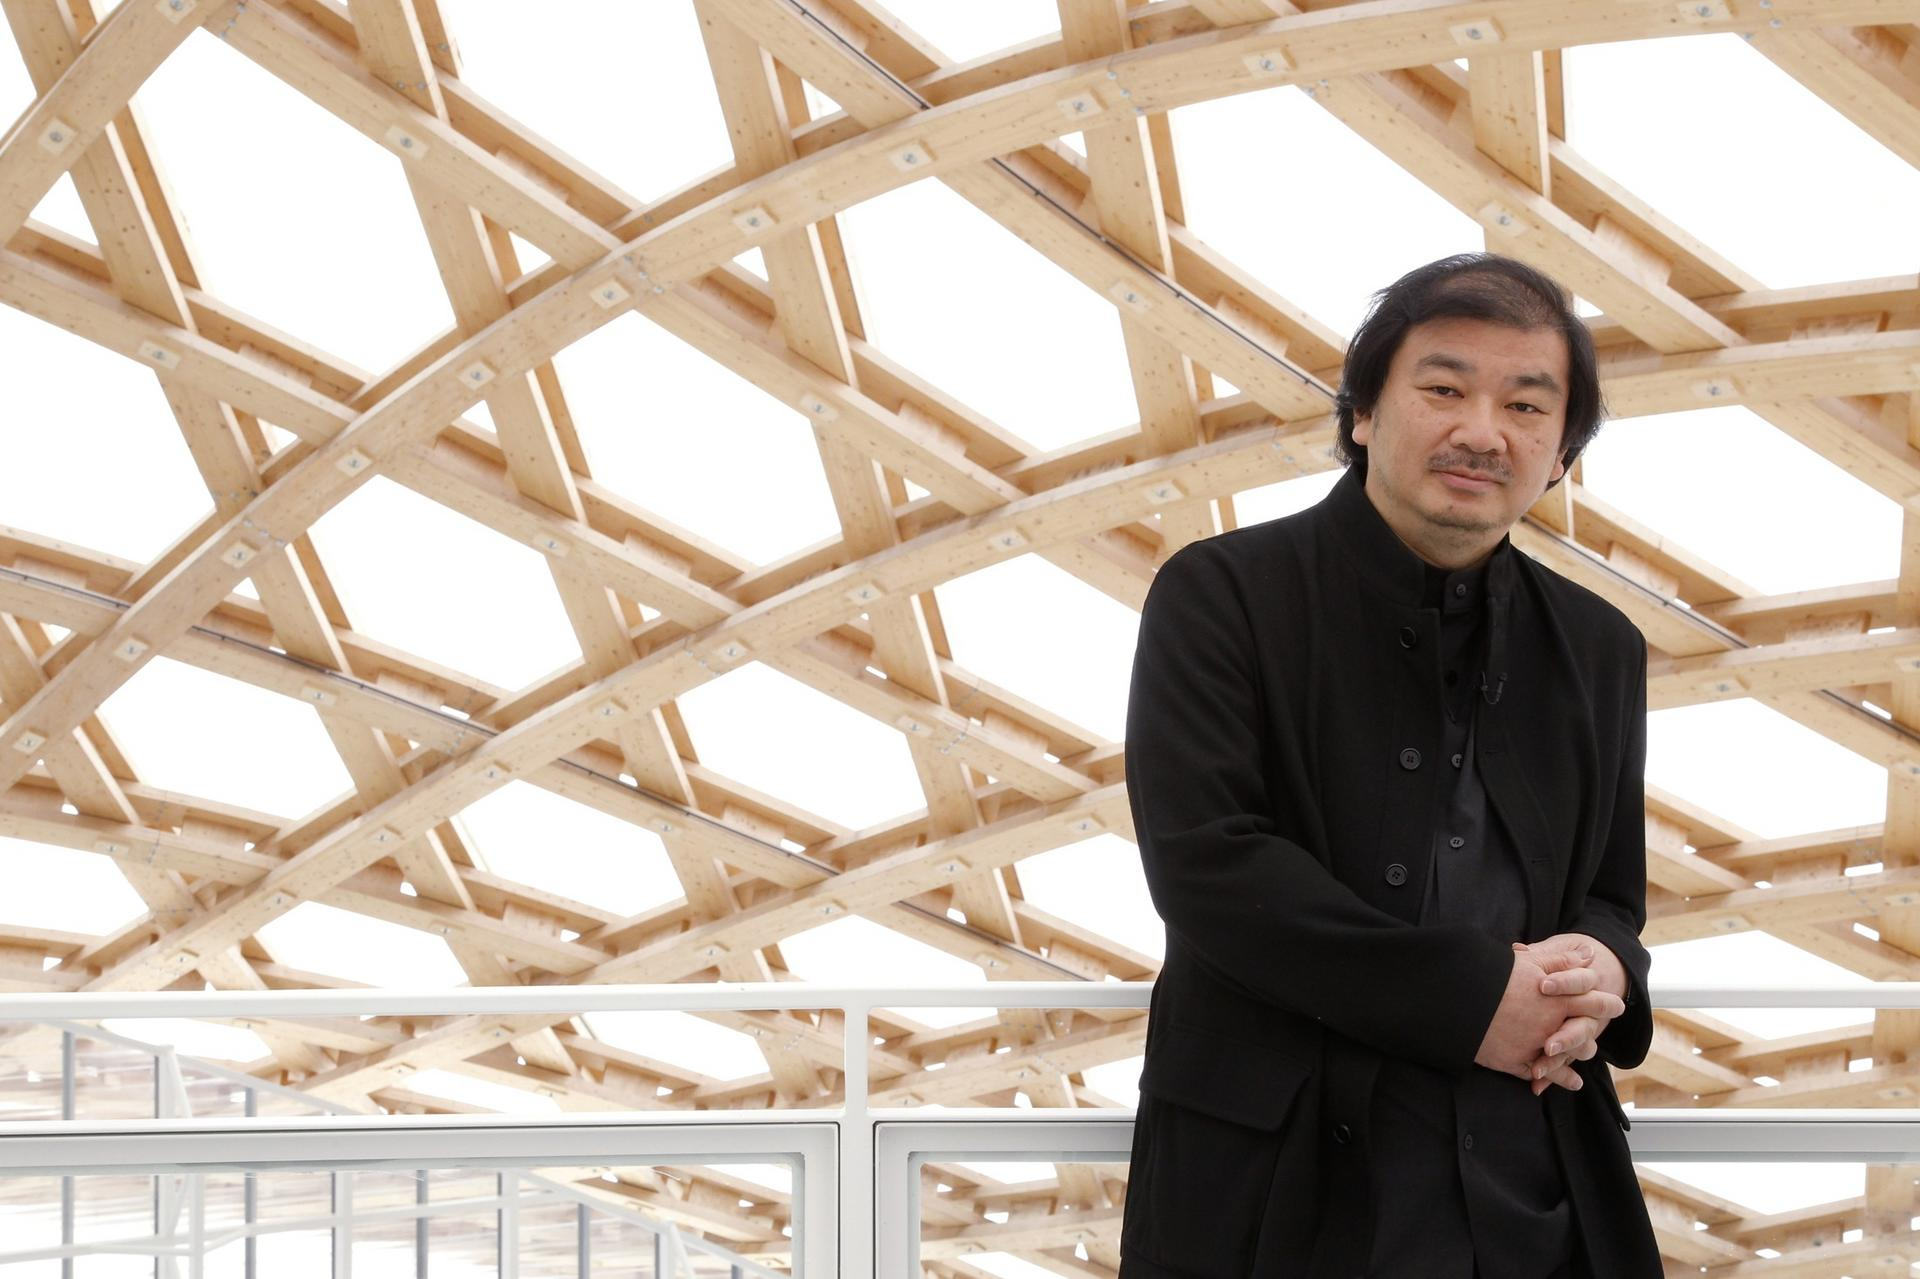 Japanese architect Shigeru Ban poses during a visit of the Centre Pompidou-Metz museum in the eastern city of Metz in this May 10, 2010, file photo. Ban, noted for his elegant and resourceful designs, has won the 2014 Pritzker Architecture Prize, the top award in the field, organizers said on March 24, 2014. REUTERS/Benoit Tessier/Files (FRANCE - Tags: ENTERTAINMENT)